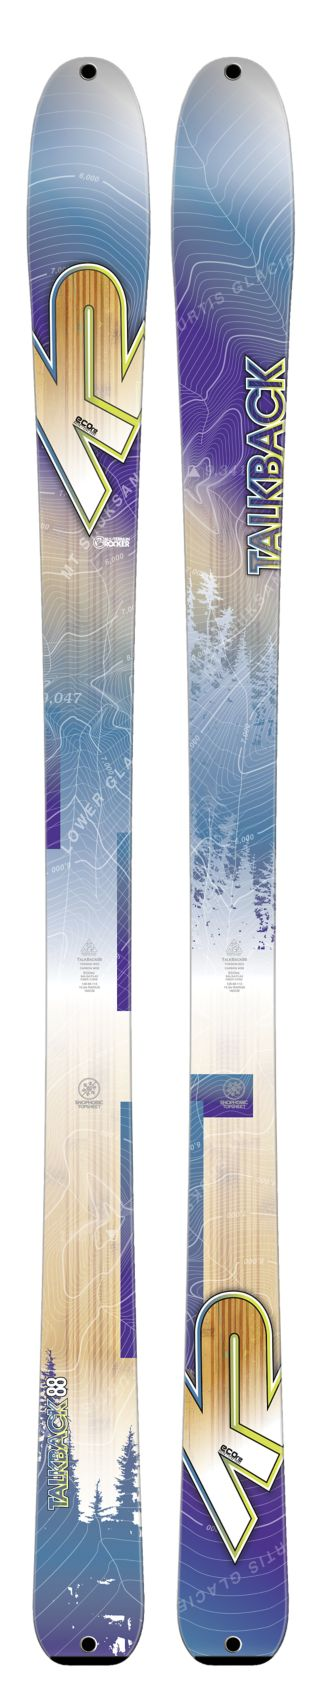 K2 Skis - Talkback 88 Ski